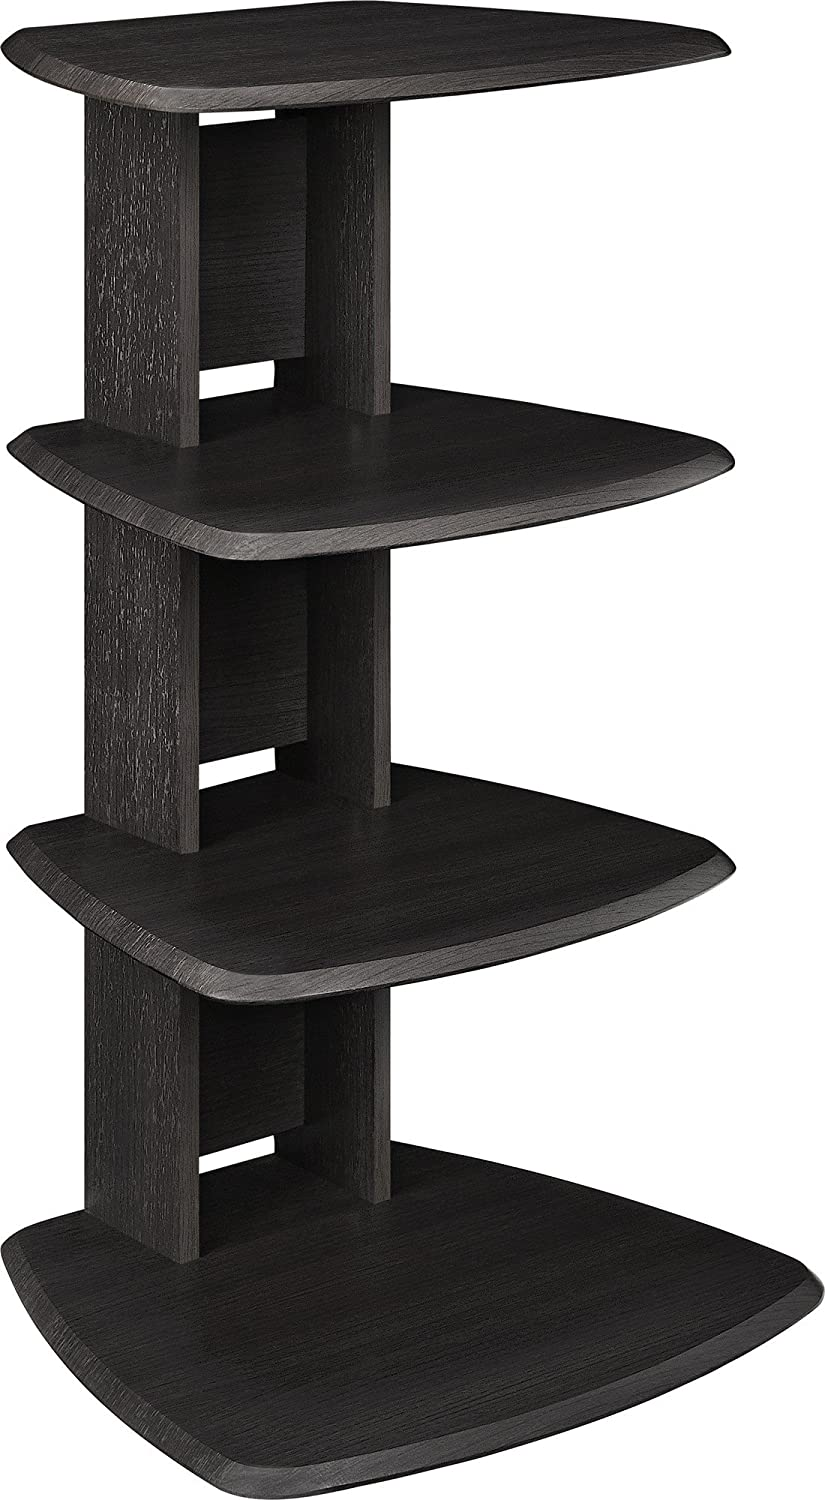 Ameriwood Home Galaxy Audio Stand, Espresso Dorel Home Furnishings 1504096